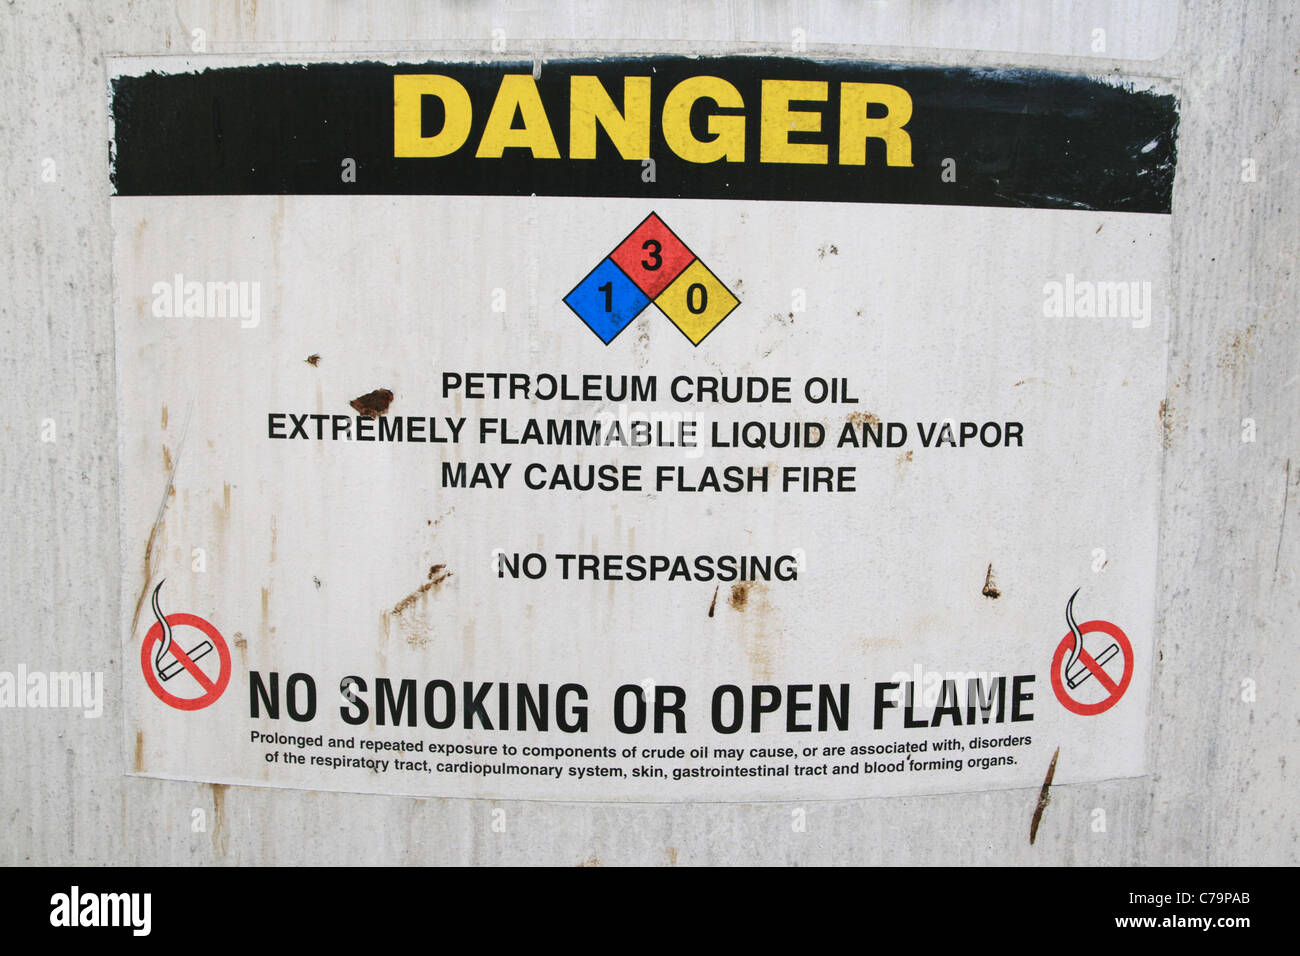 crude oil danger sign on the side of an old crude oil tank - Stock Image